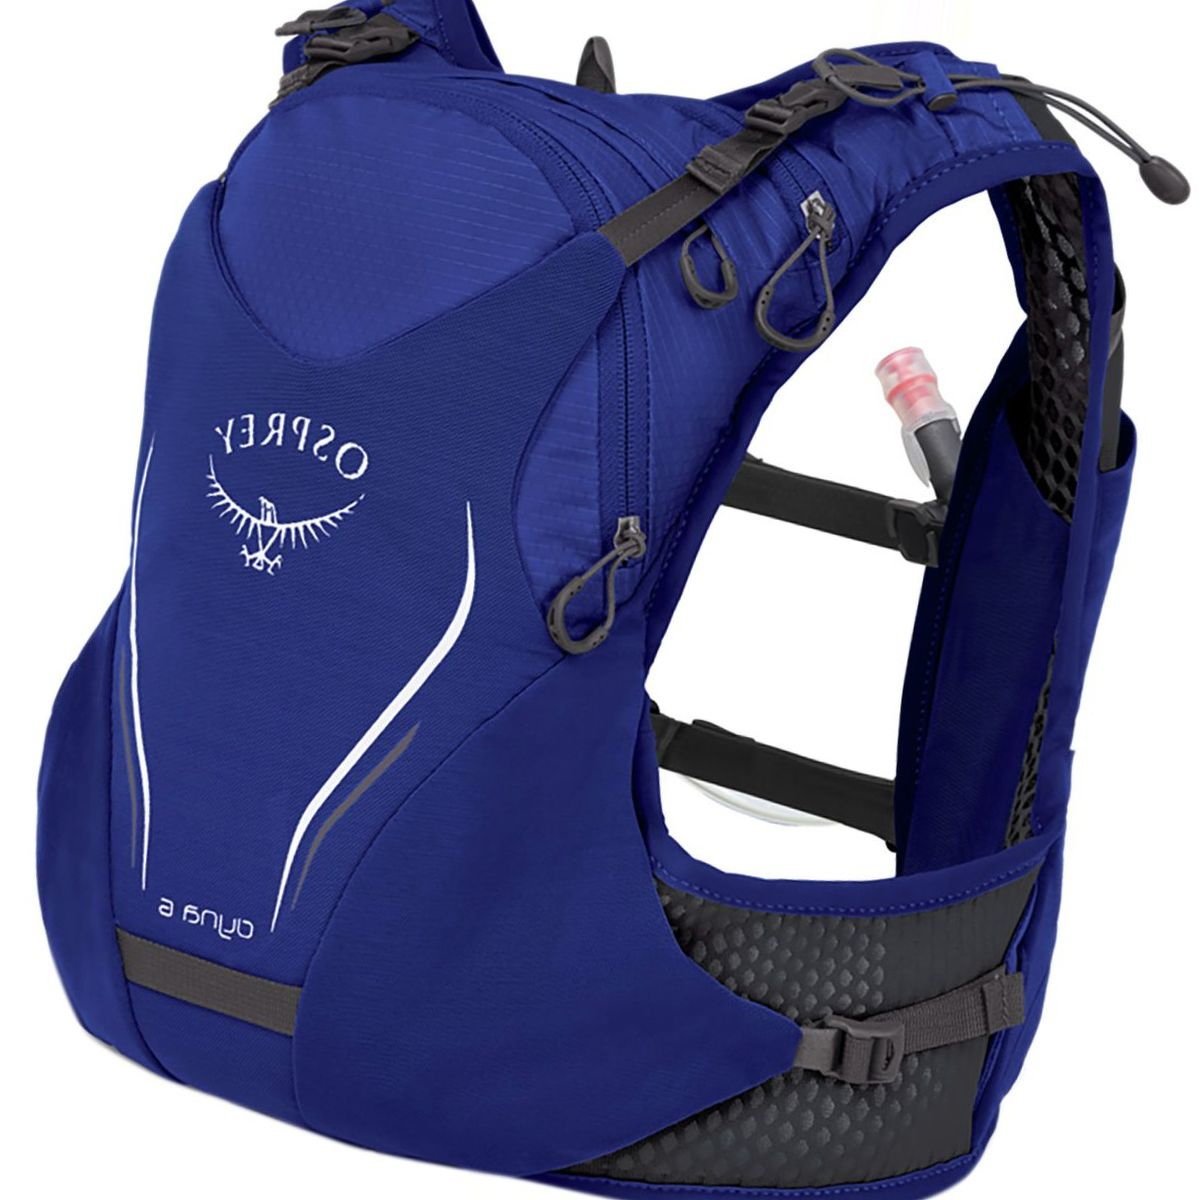 Osprey Packs Dyna 6L Backpack - Women's